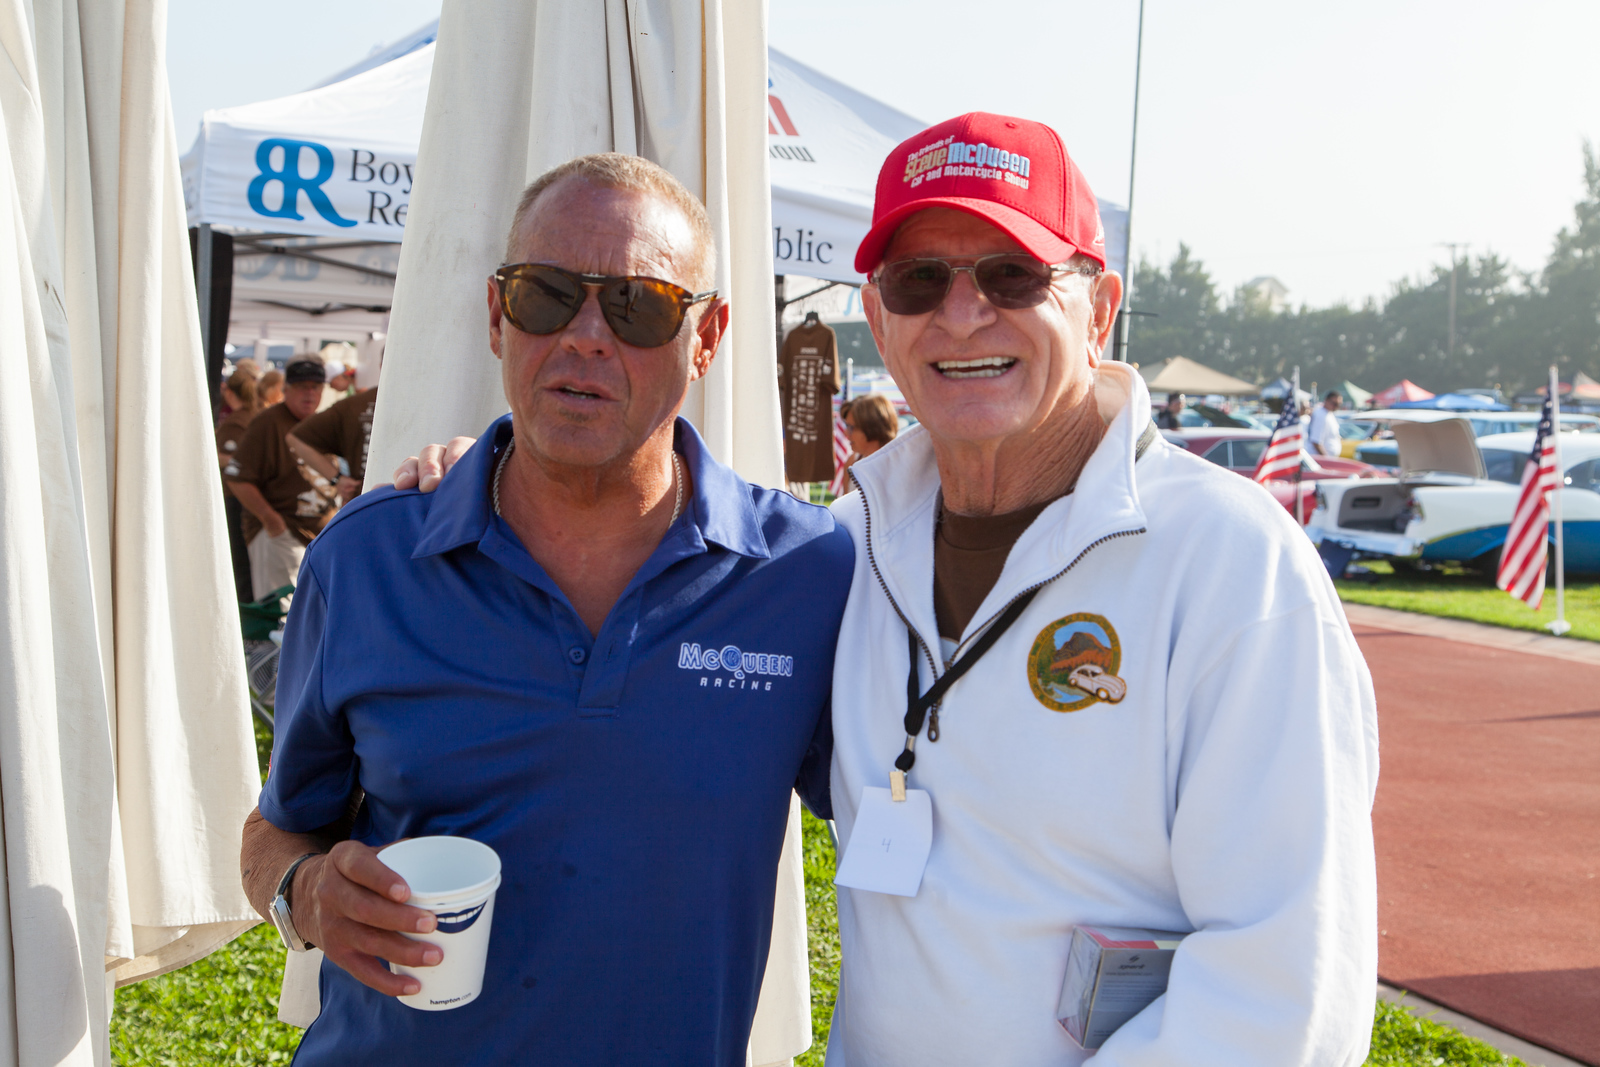 Co-chairs Chad McQueen and Ron Harris -  The Friends of Steve McQueen Car and Motorcycle Show